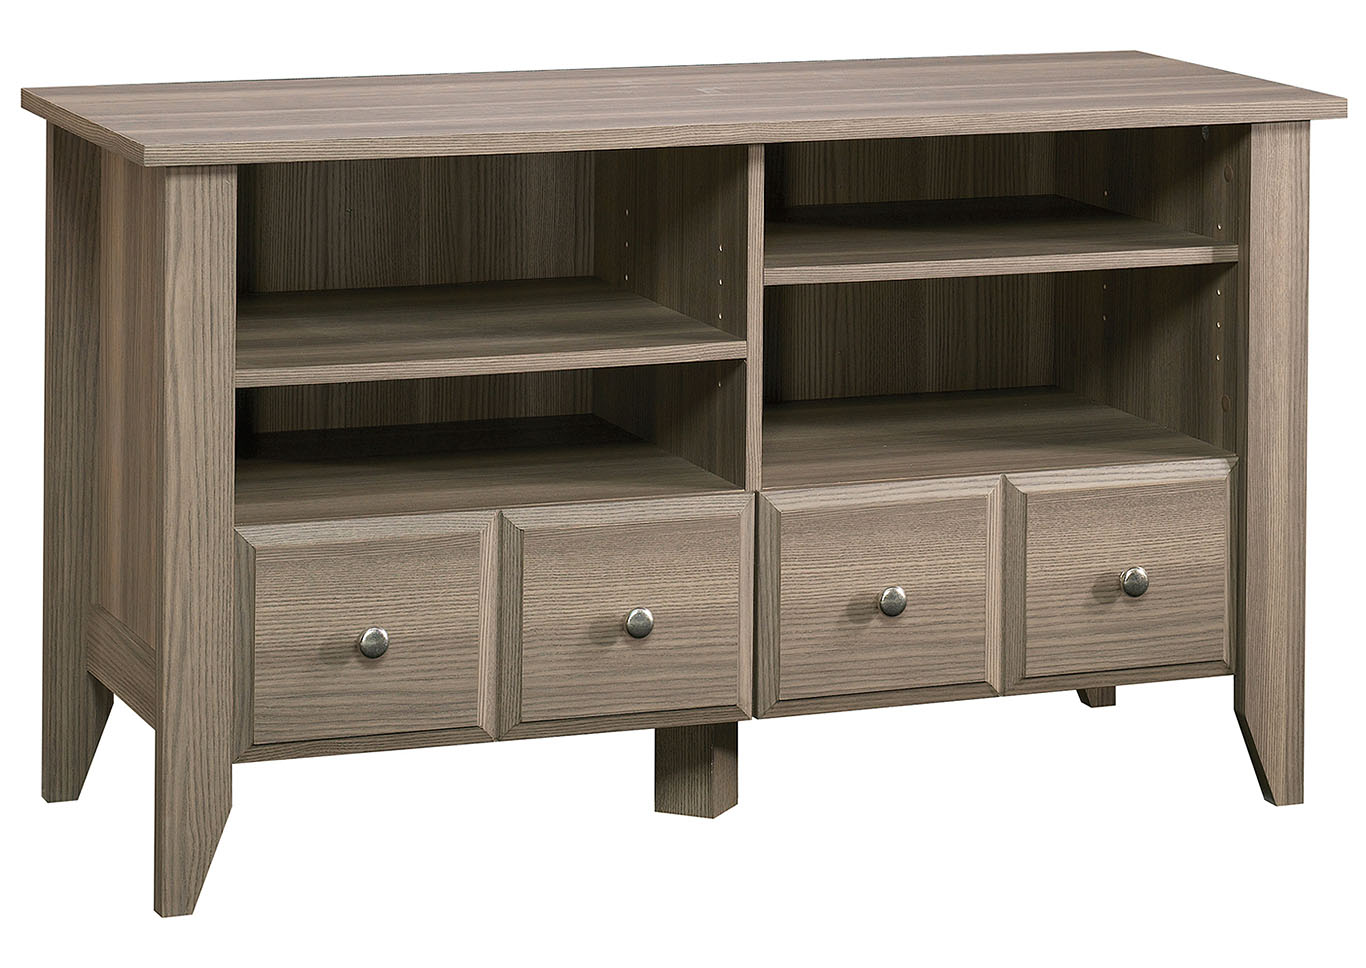 Shoal Creek Panel Diamond Ash Tv Stand,Sauder